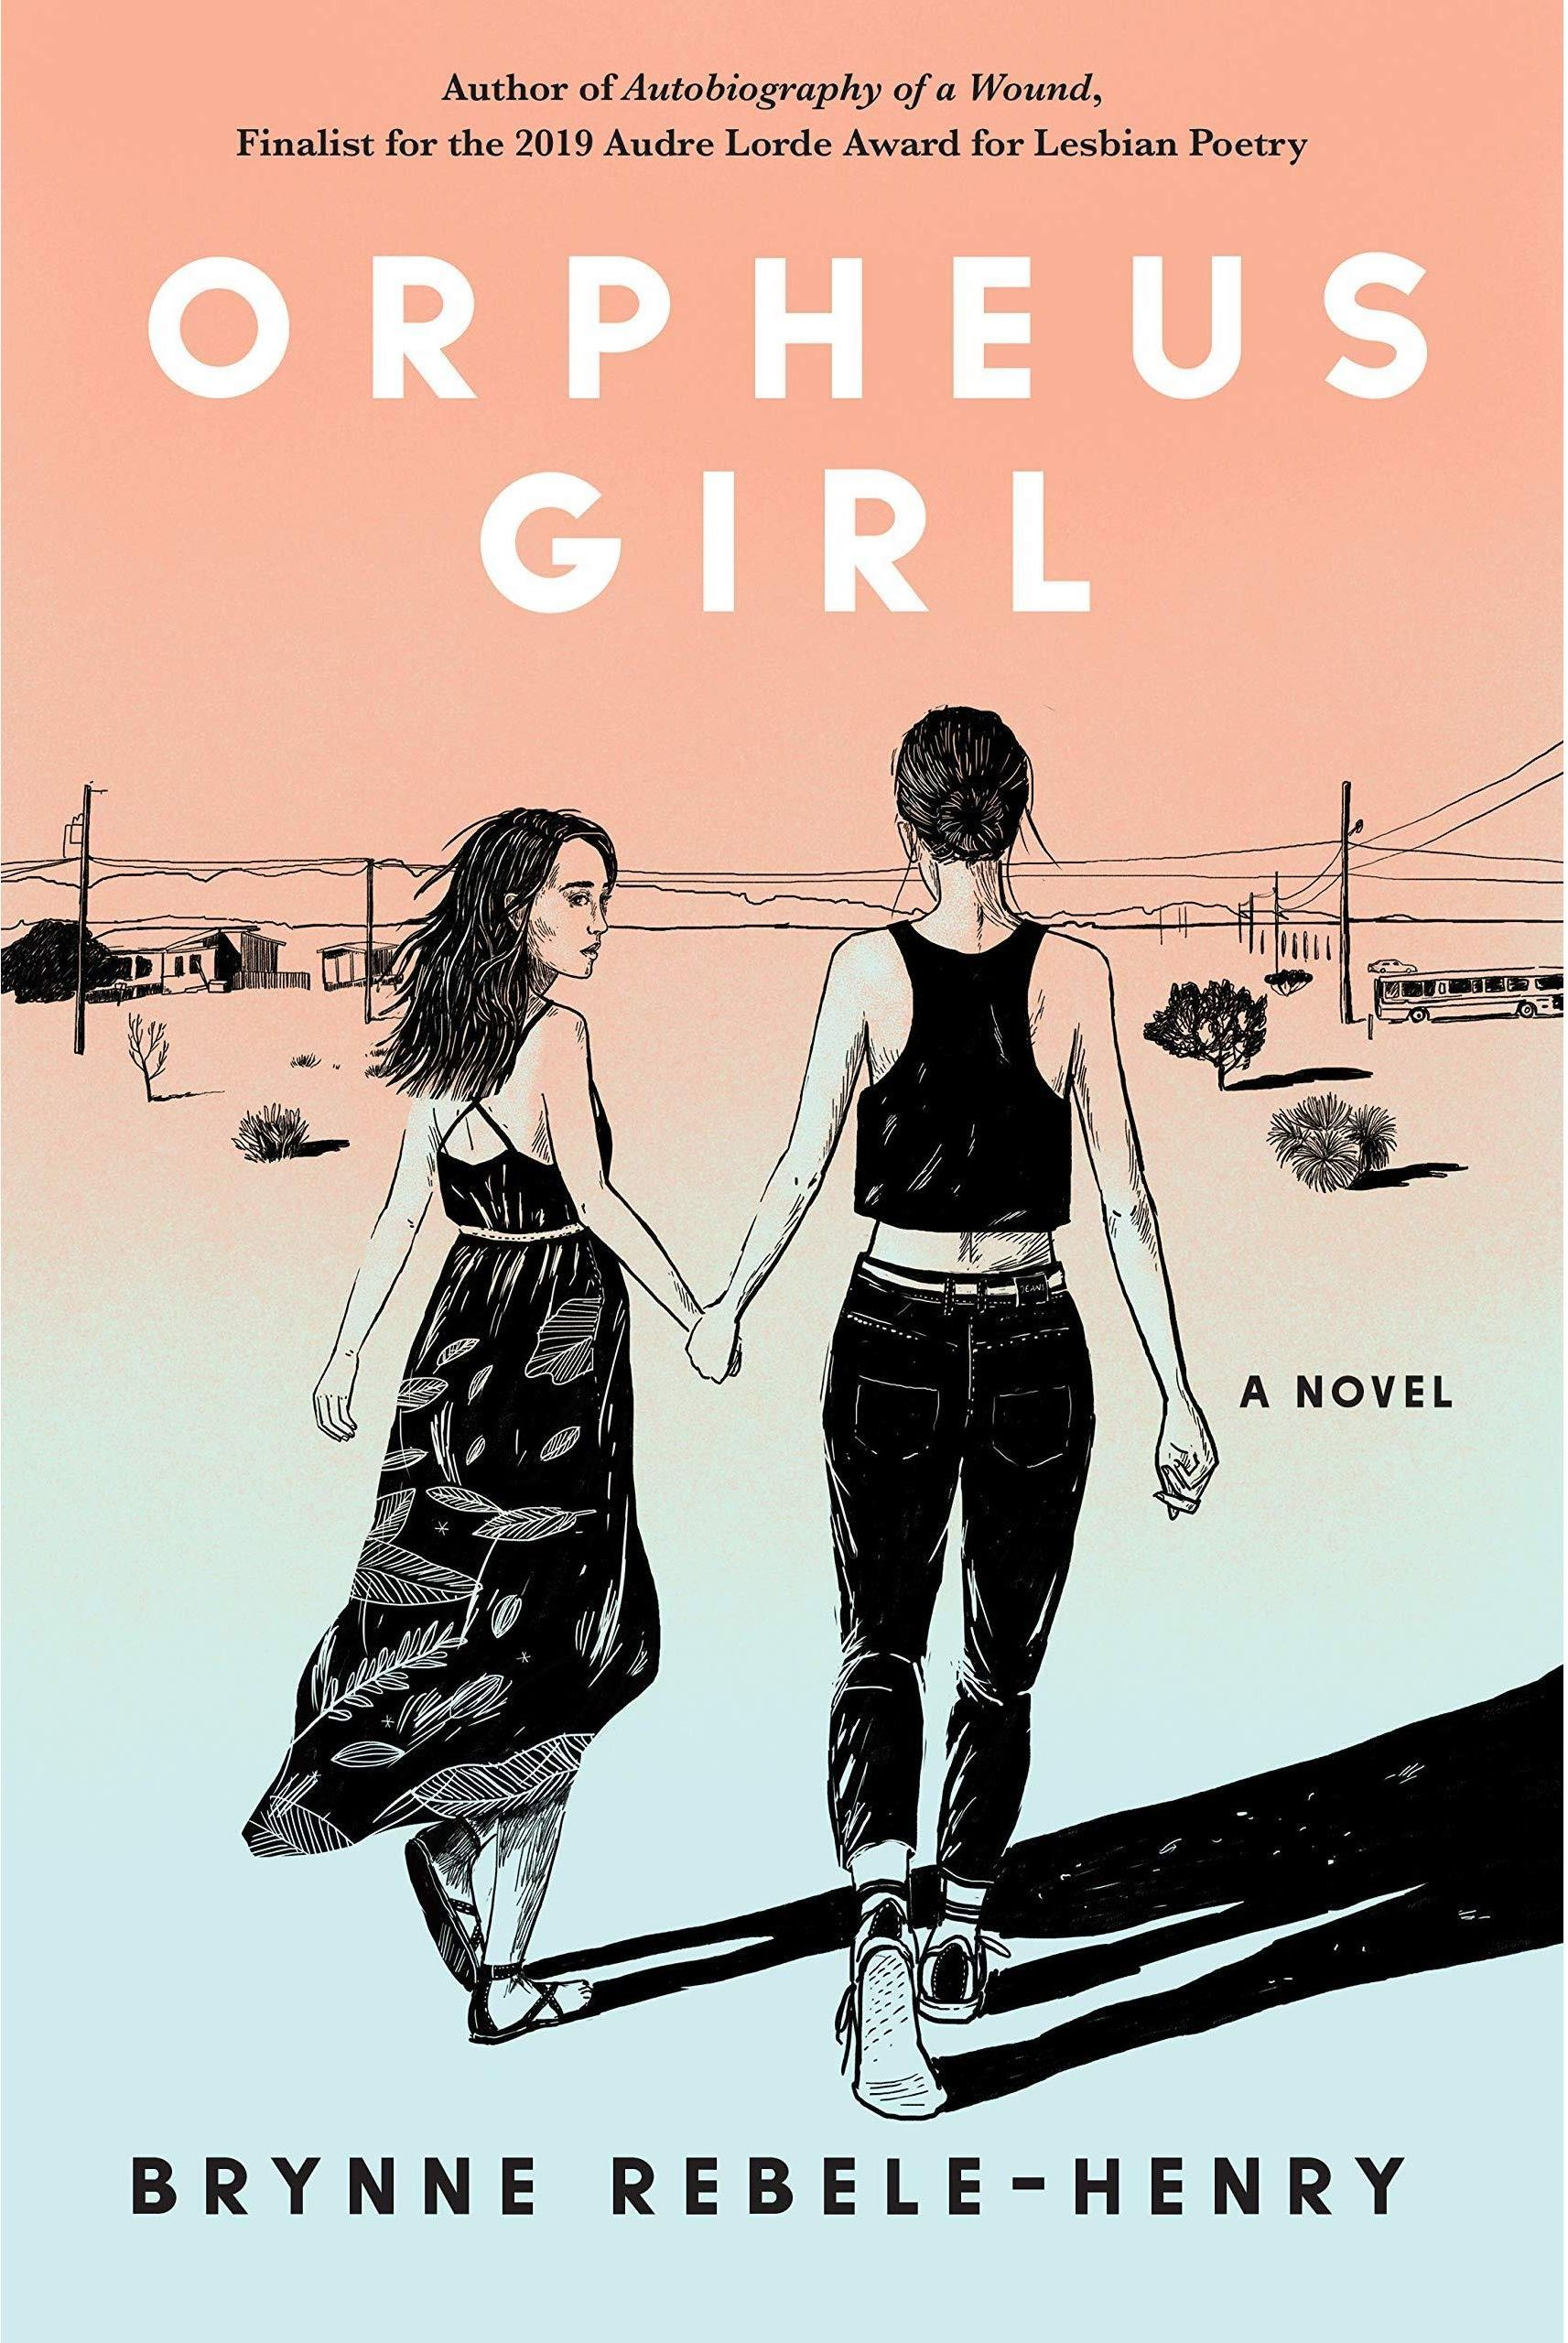 Pdf Download Orpheus Girl By Brynne Rebele Henry Books Ya